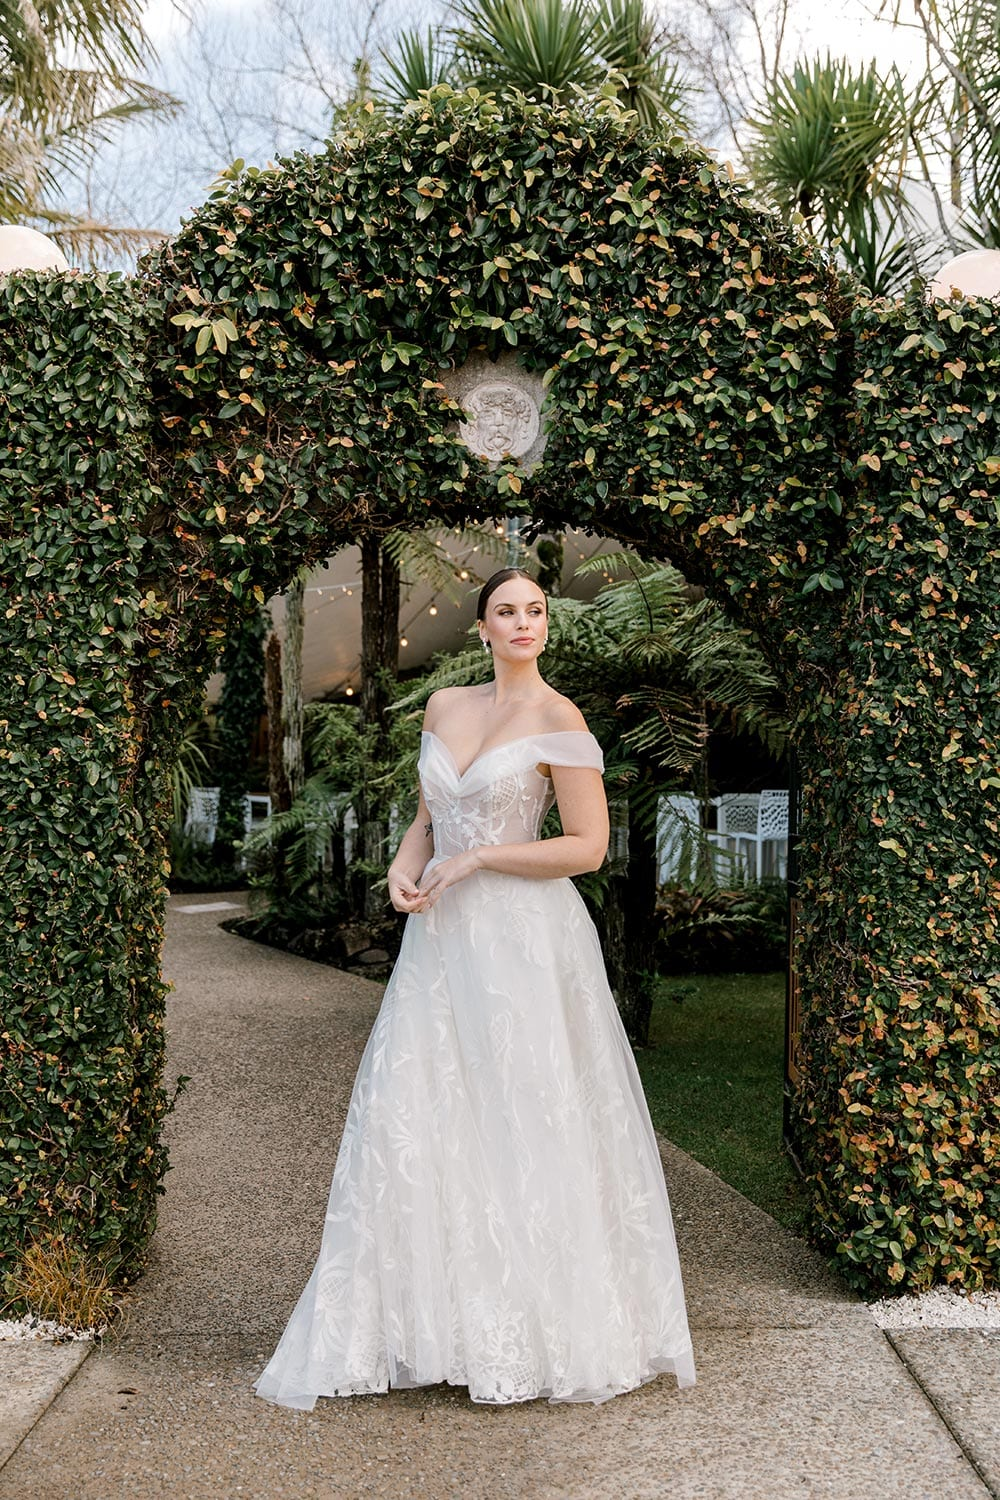 Zoe wedding dress by Vinka Design - a romantic & dreamy off-shoulder gown with a structured, boned bodice, a full lace & tulle skirt. Semi-sheer bodice with tulle off-shoulder detailing and satin belt. Worn in green garden archway.